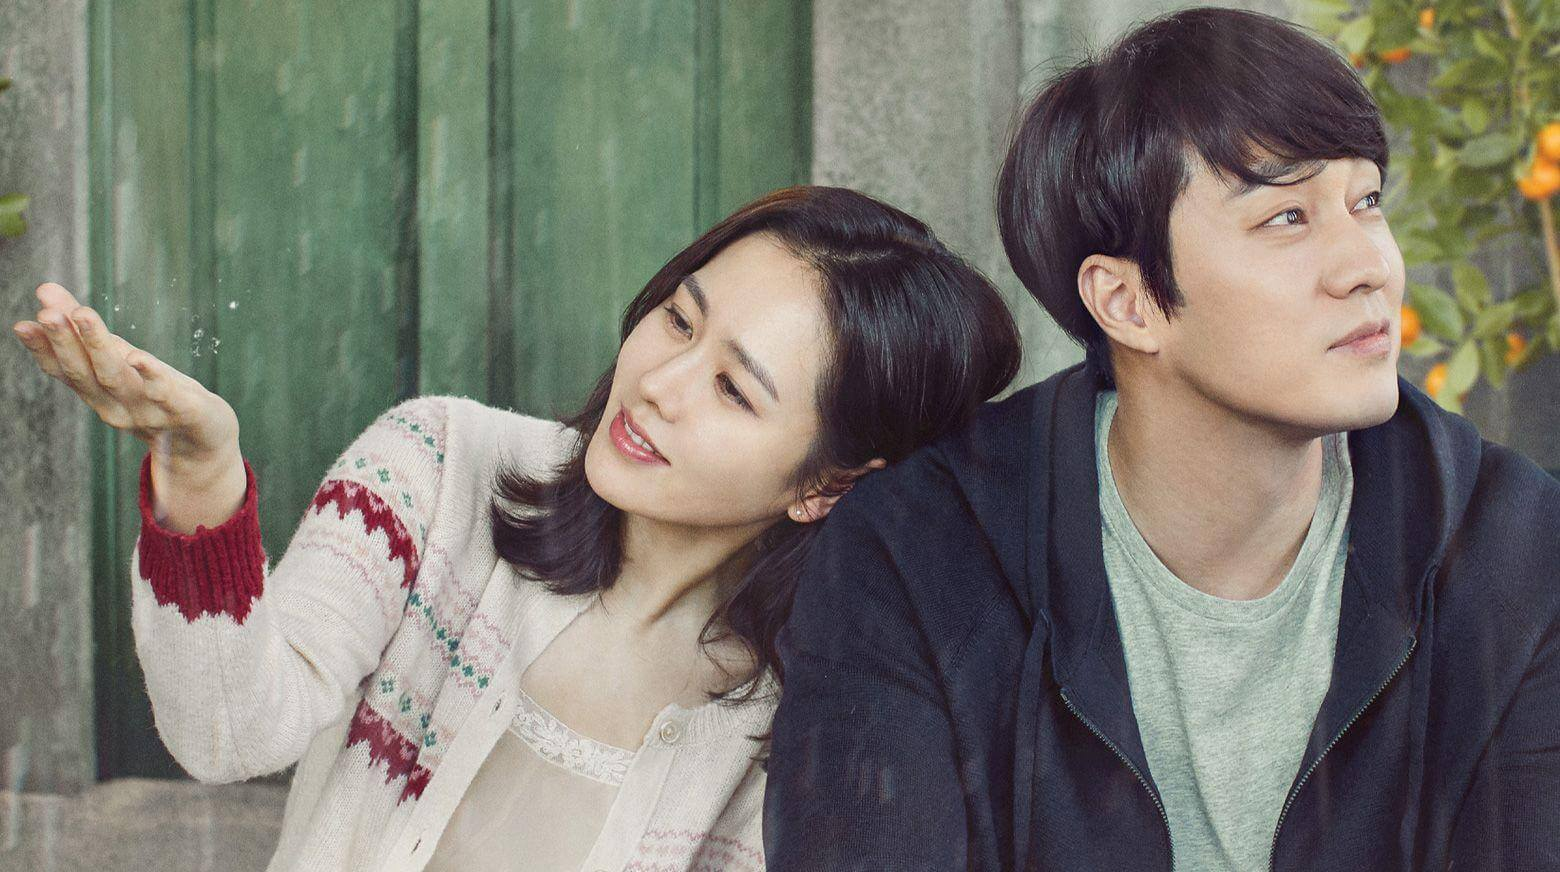 Be with You - Japanese romance movies